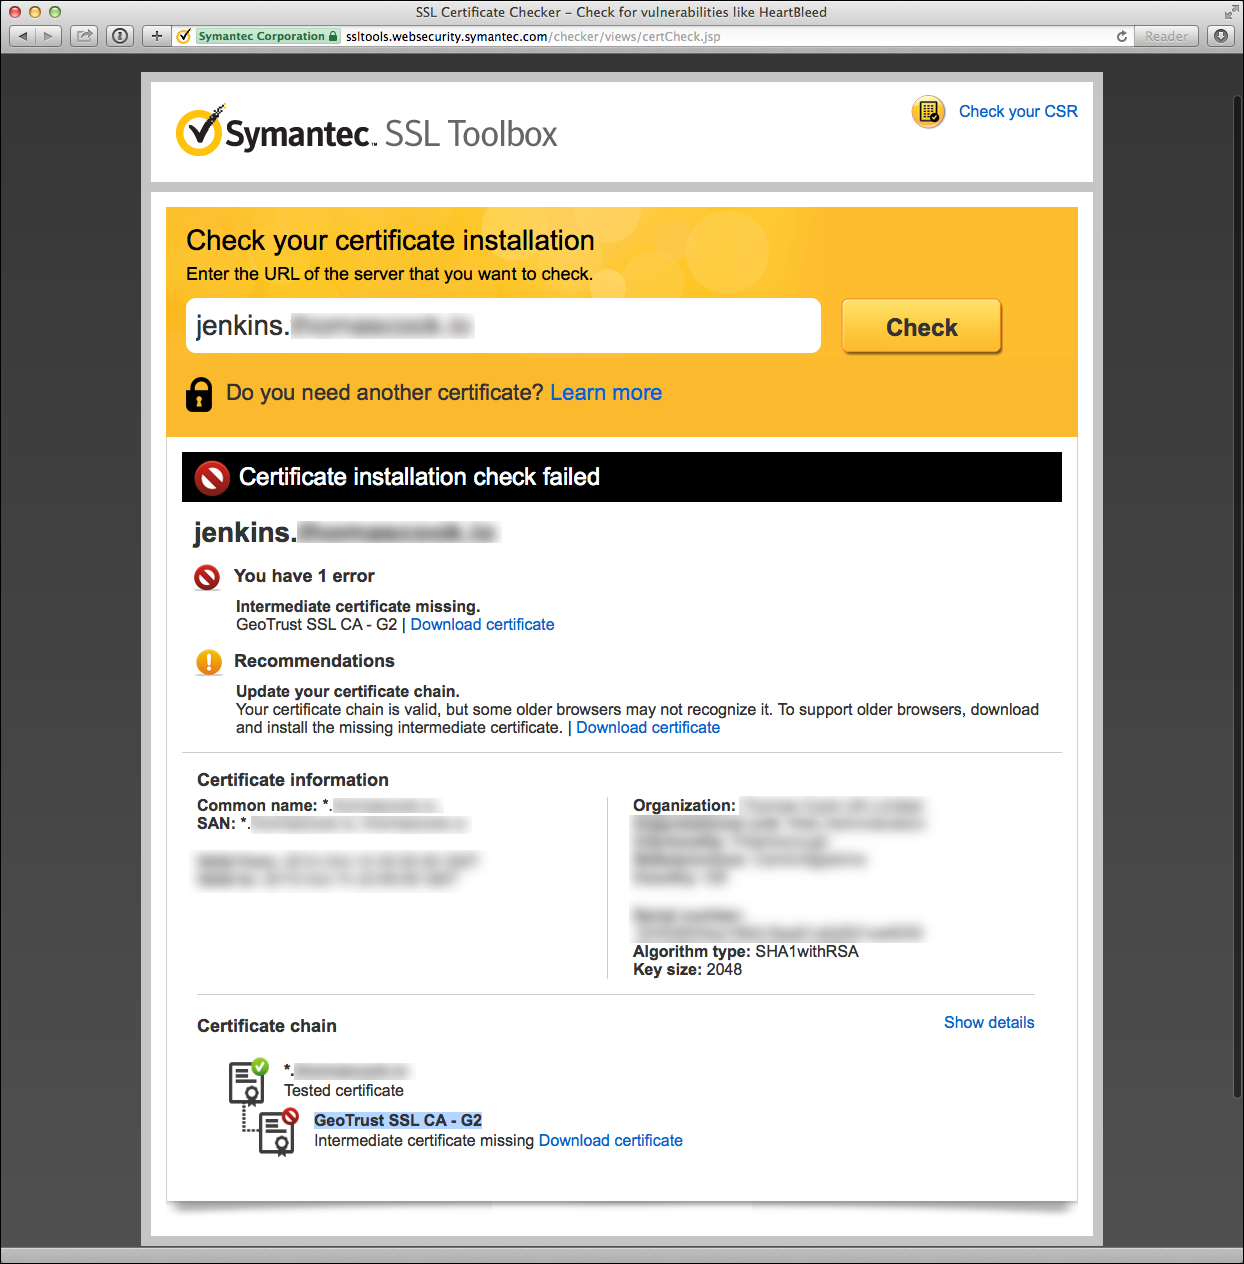 Screenshot of a failed certificate validation in the Symantec SSL Toolbox